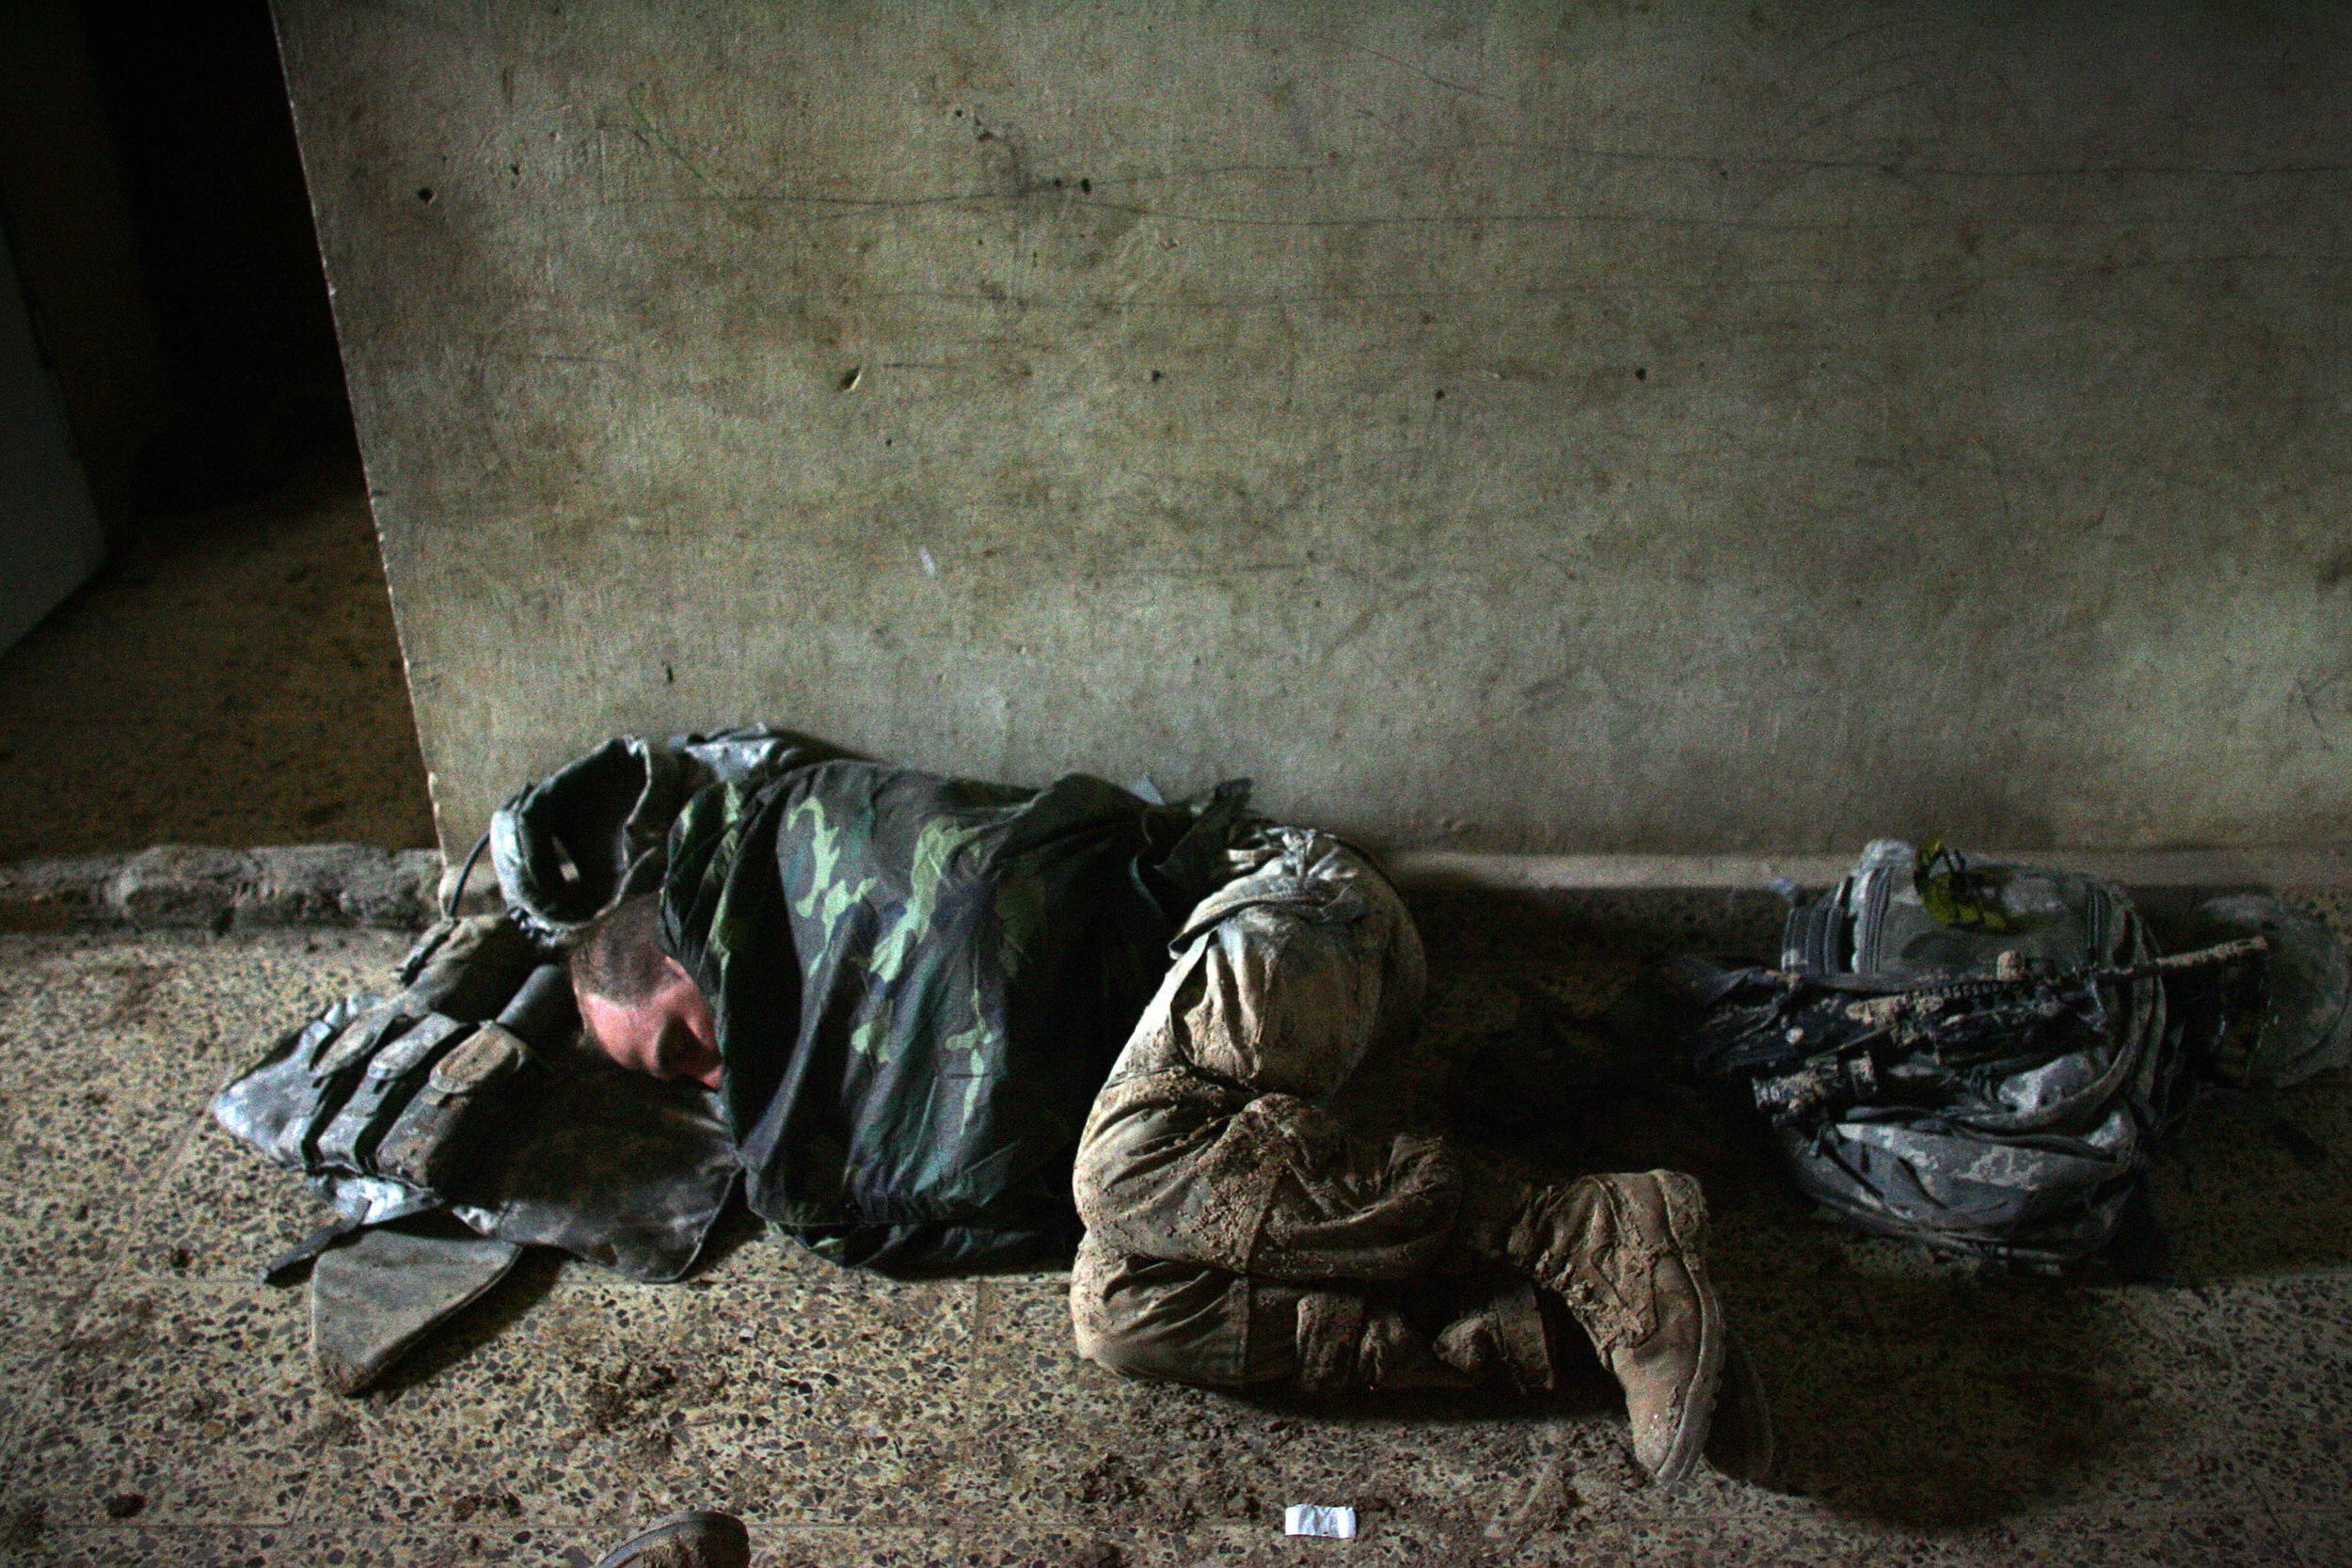 Sleeping Soldier Getty Images